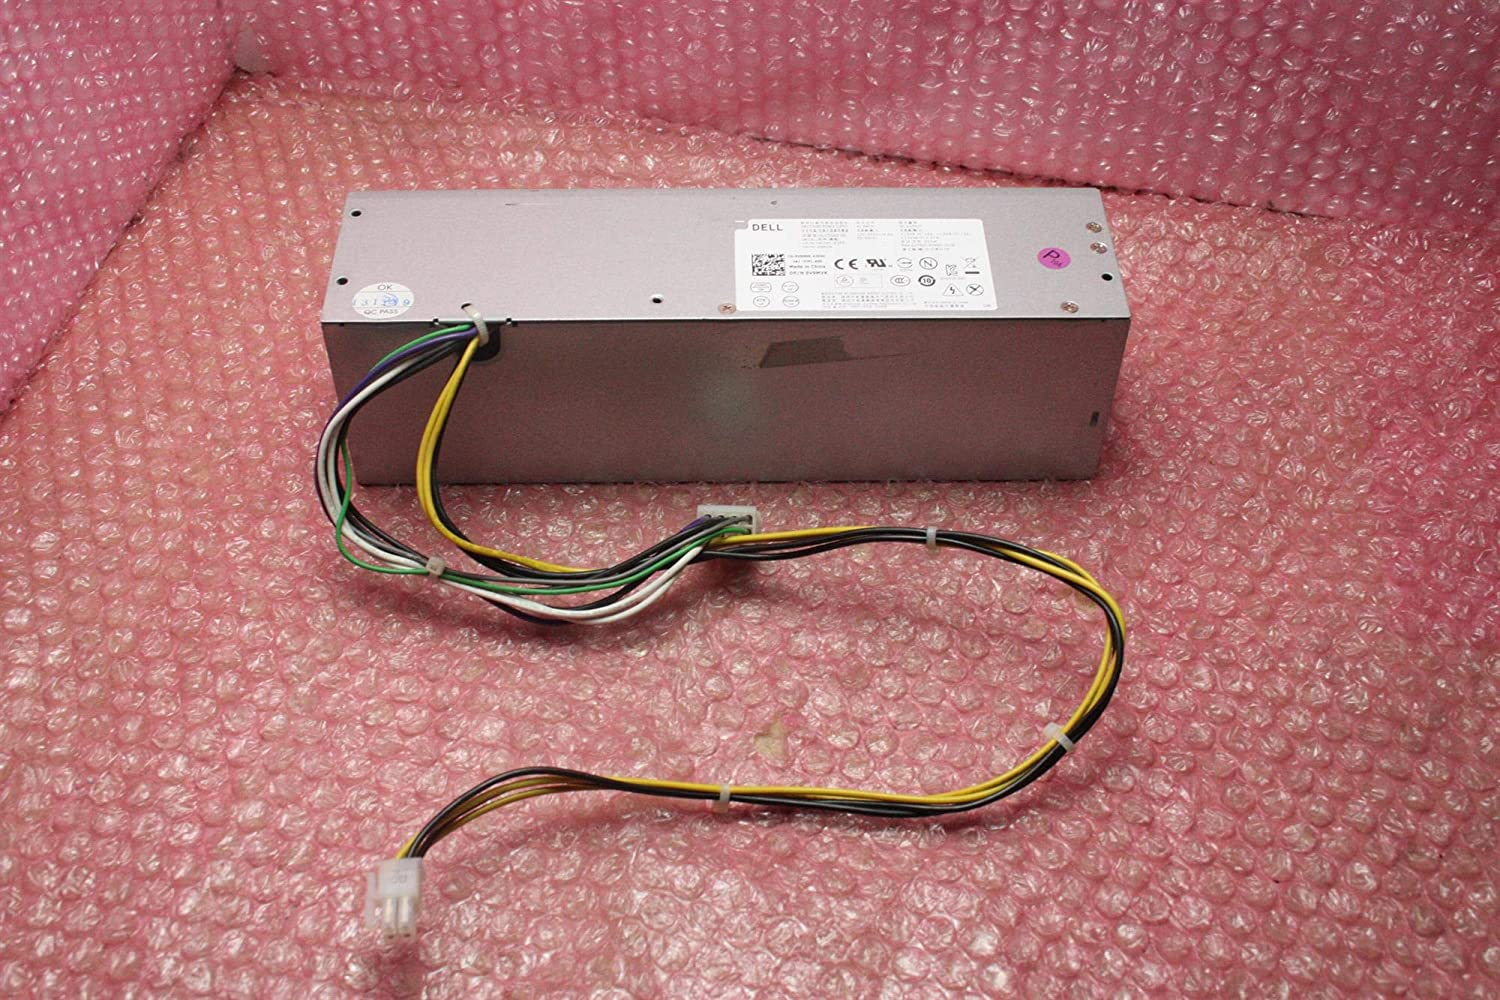 Dell V9MVK OptiPlex 3020 9020 Precision T1700 SFF 255w Power Supply AC255AS-00